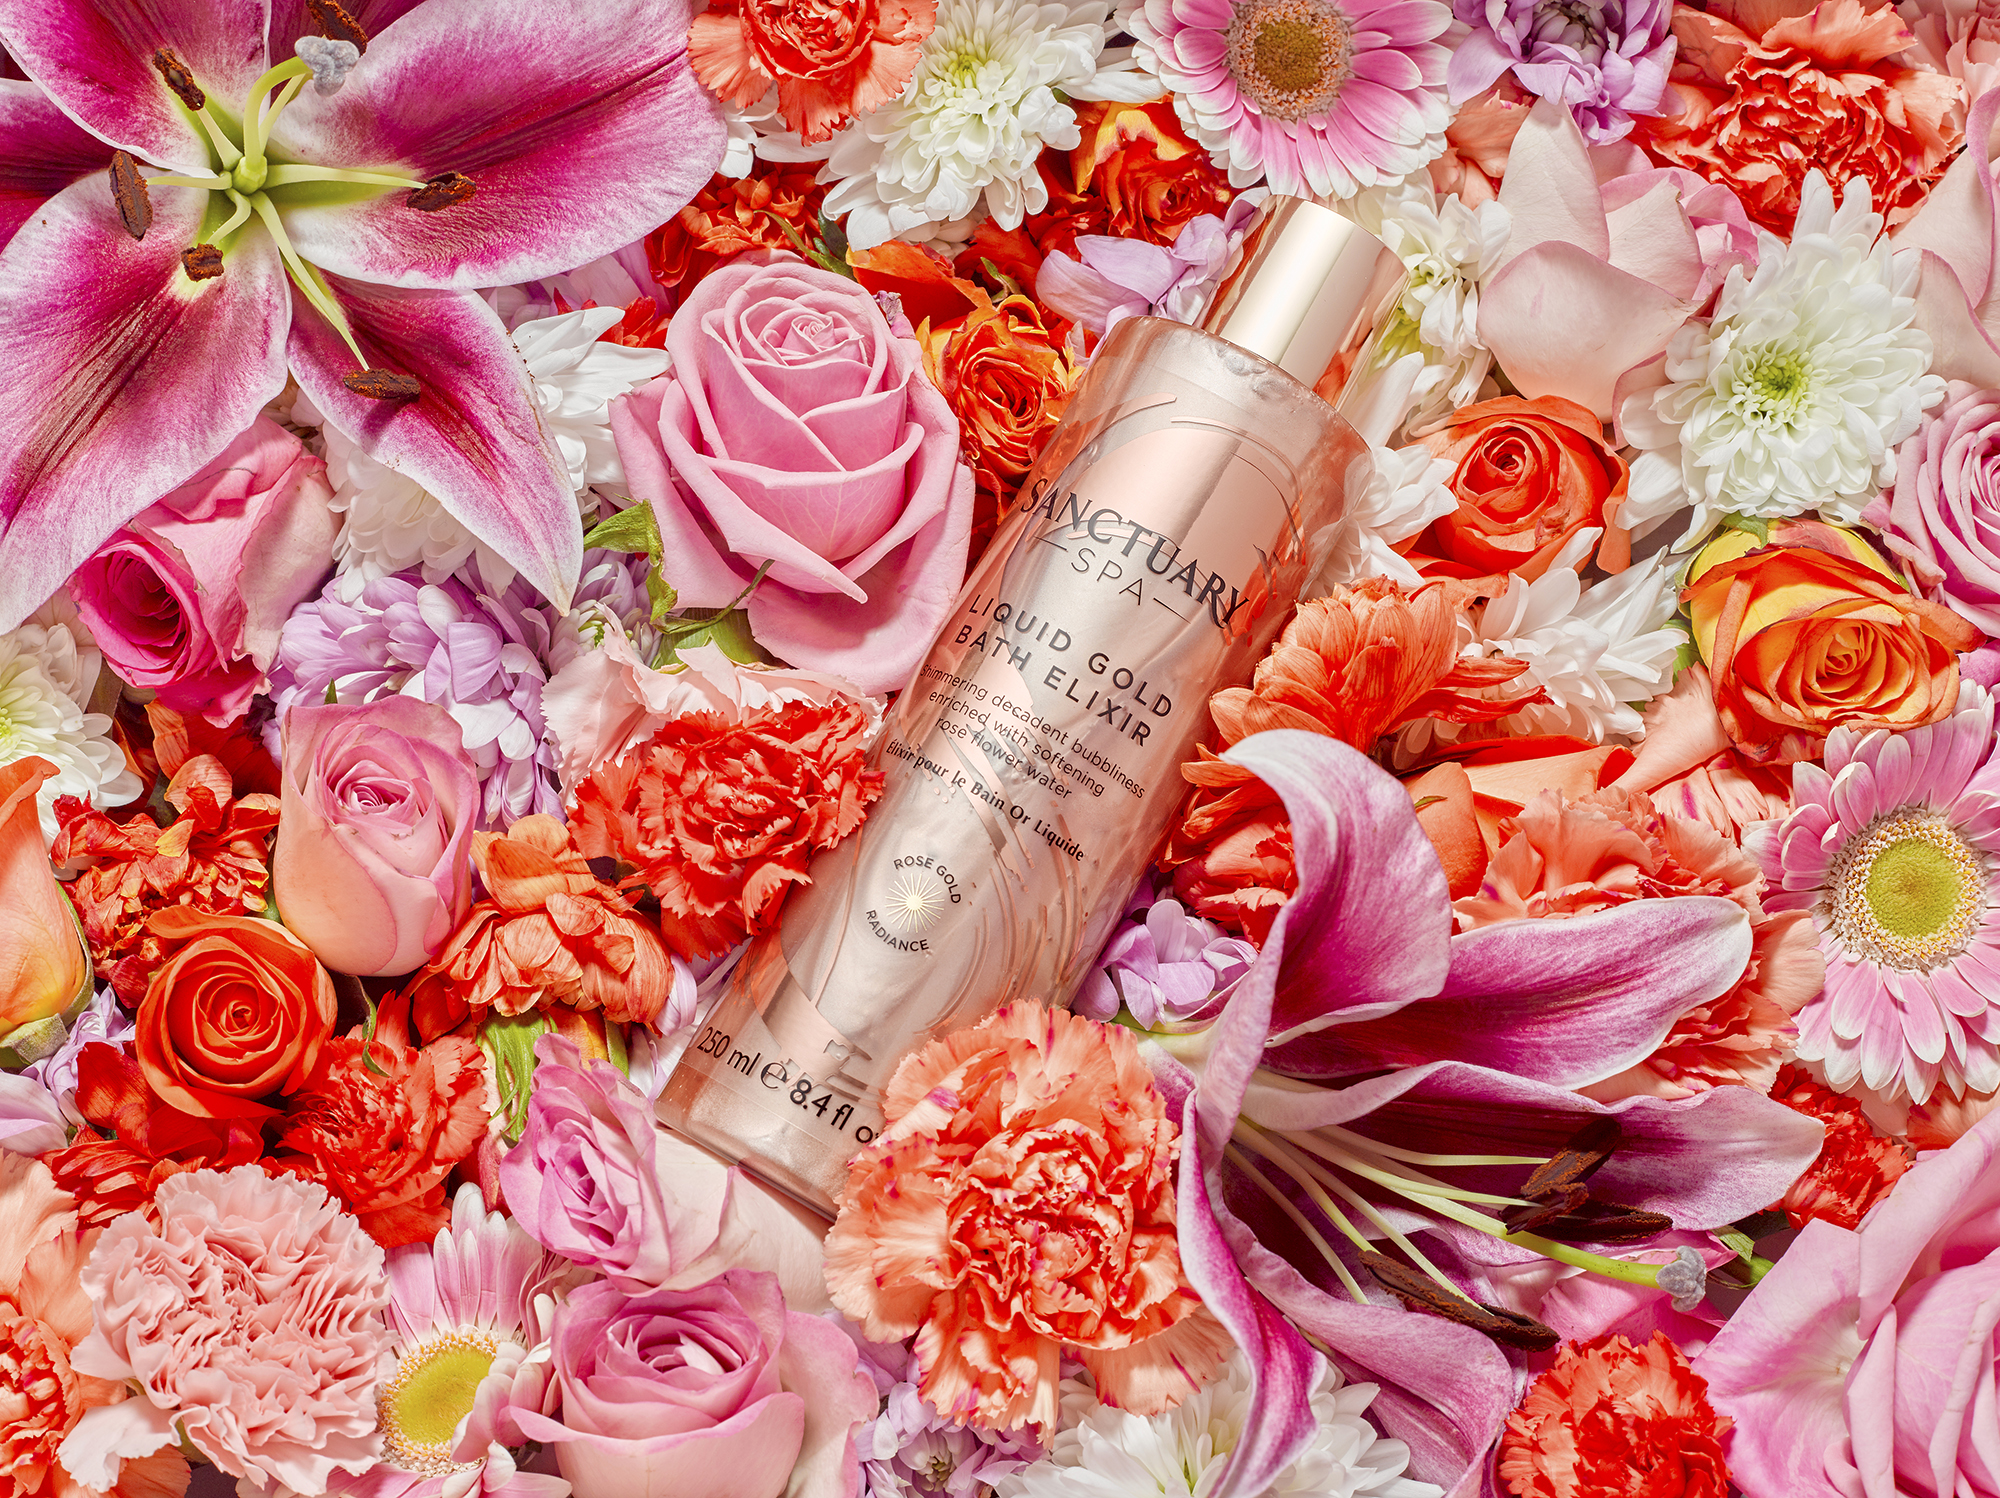 beauty product surround by fresh flowers from london photographer chris howlett